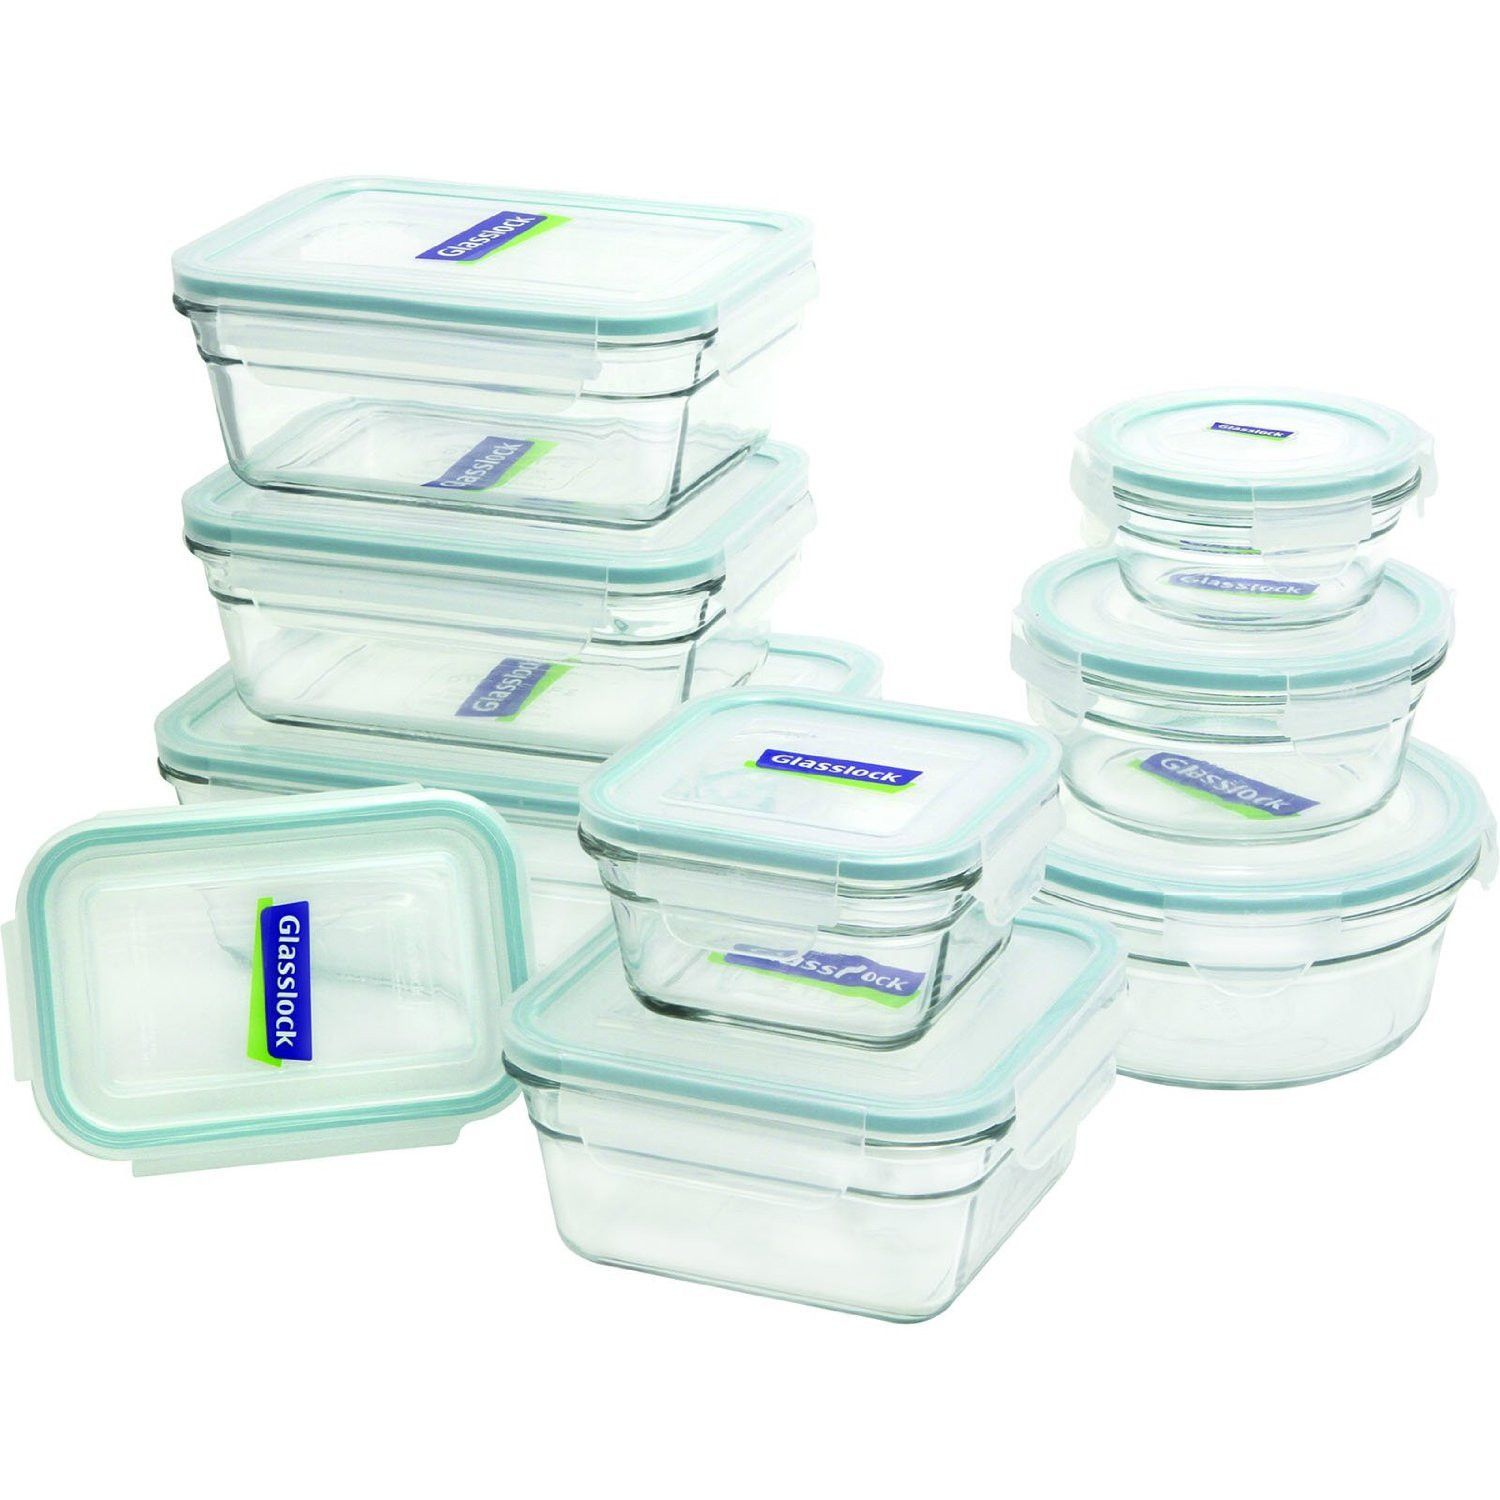 Glasslock Food Storage Container Sets Captivating Glasslock 18Piece Food Storageoven Safe Container Set  Food Inspiration